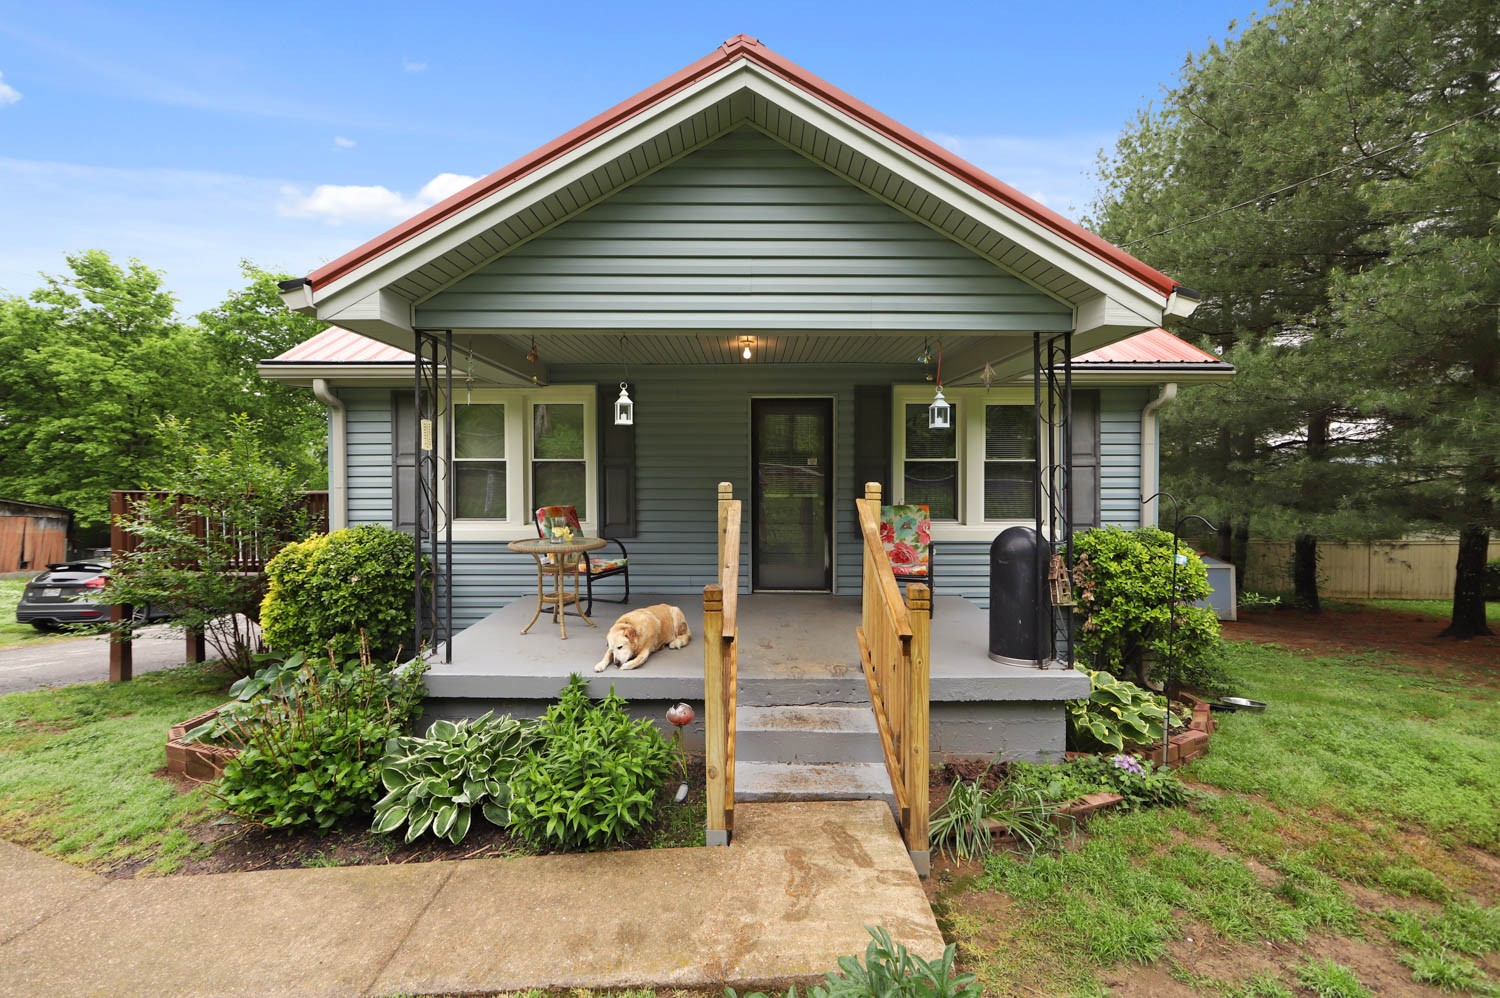 Charming country cottage just steps from Leipers Fork Village with shopping, dining, and live music.  This home has many possibilites as a short term rental, small town retreat, or primary residence.  Make it your own!  Home is being sold as is.